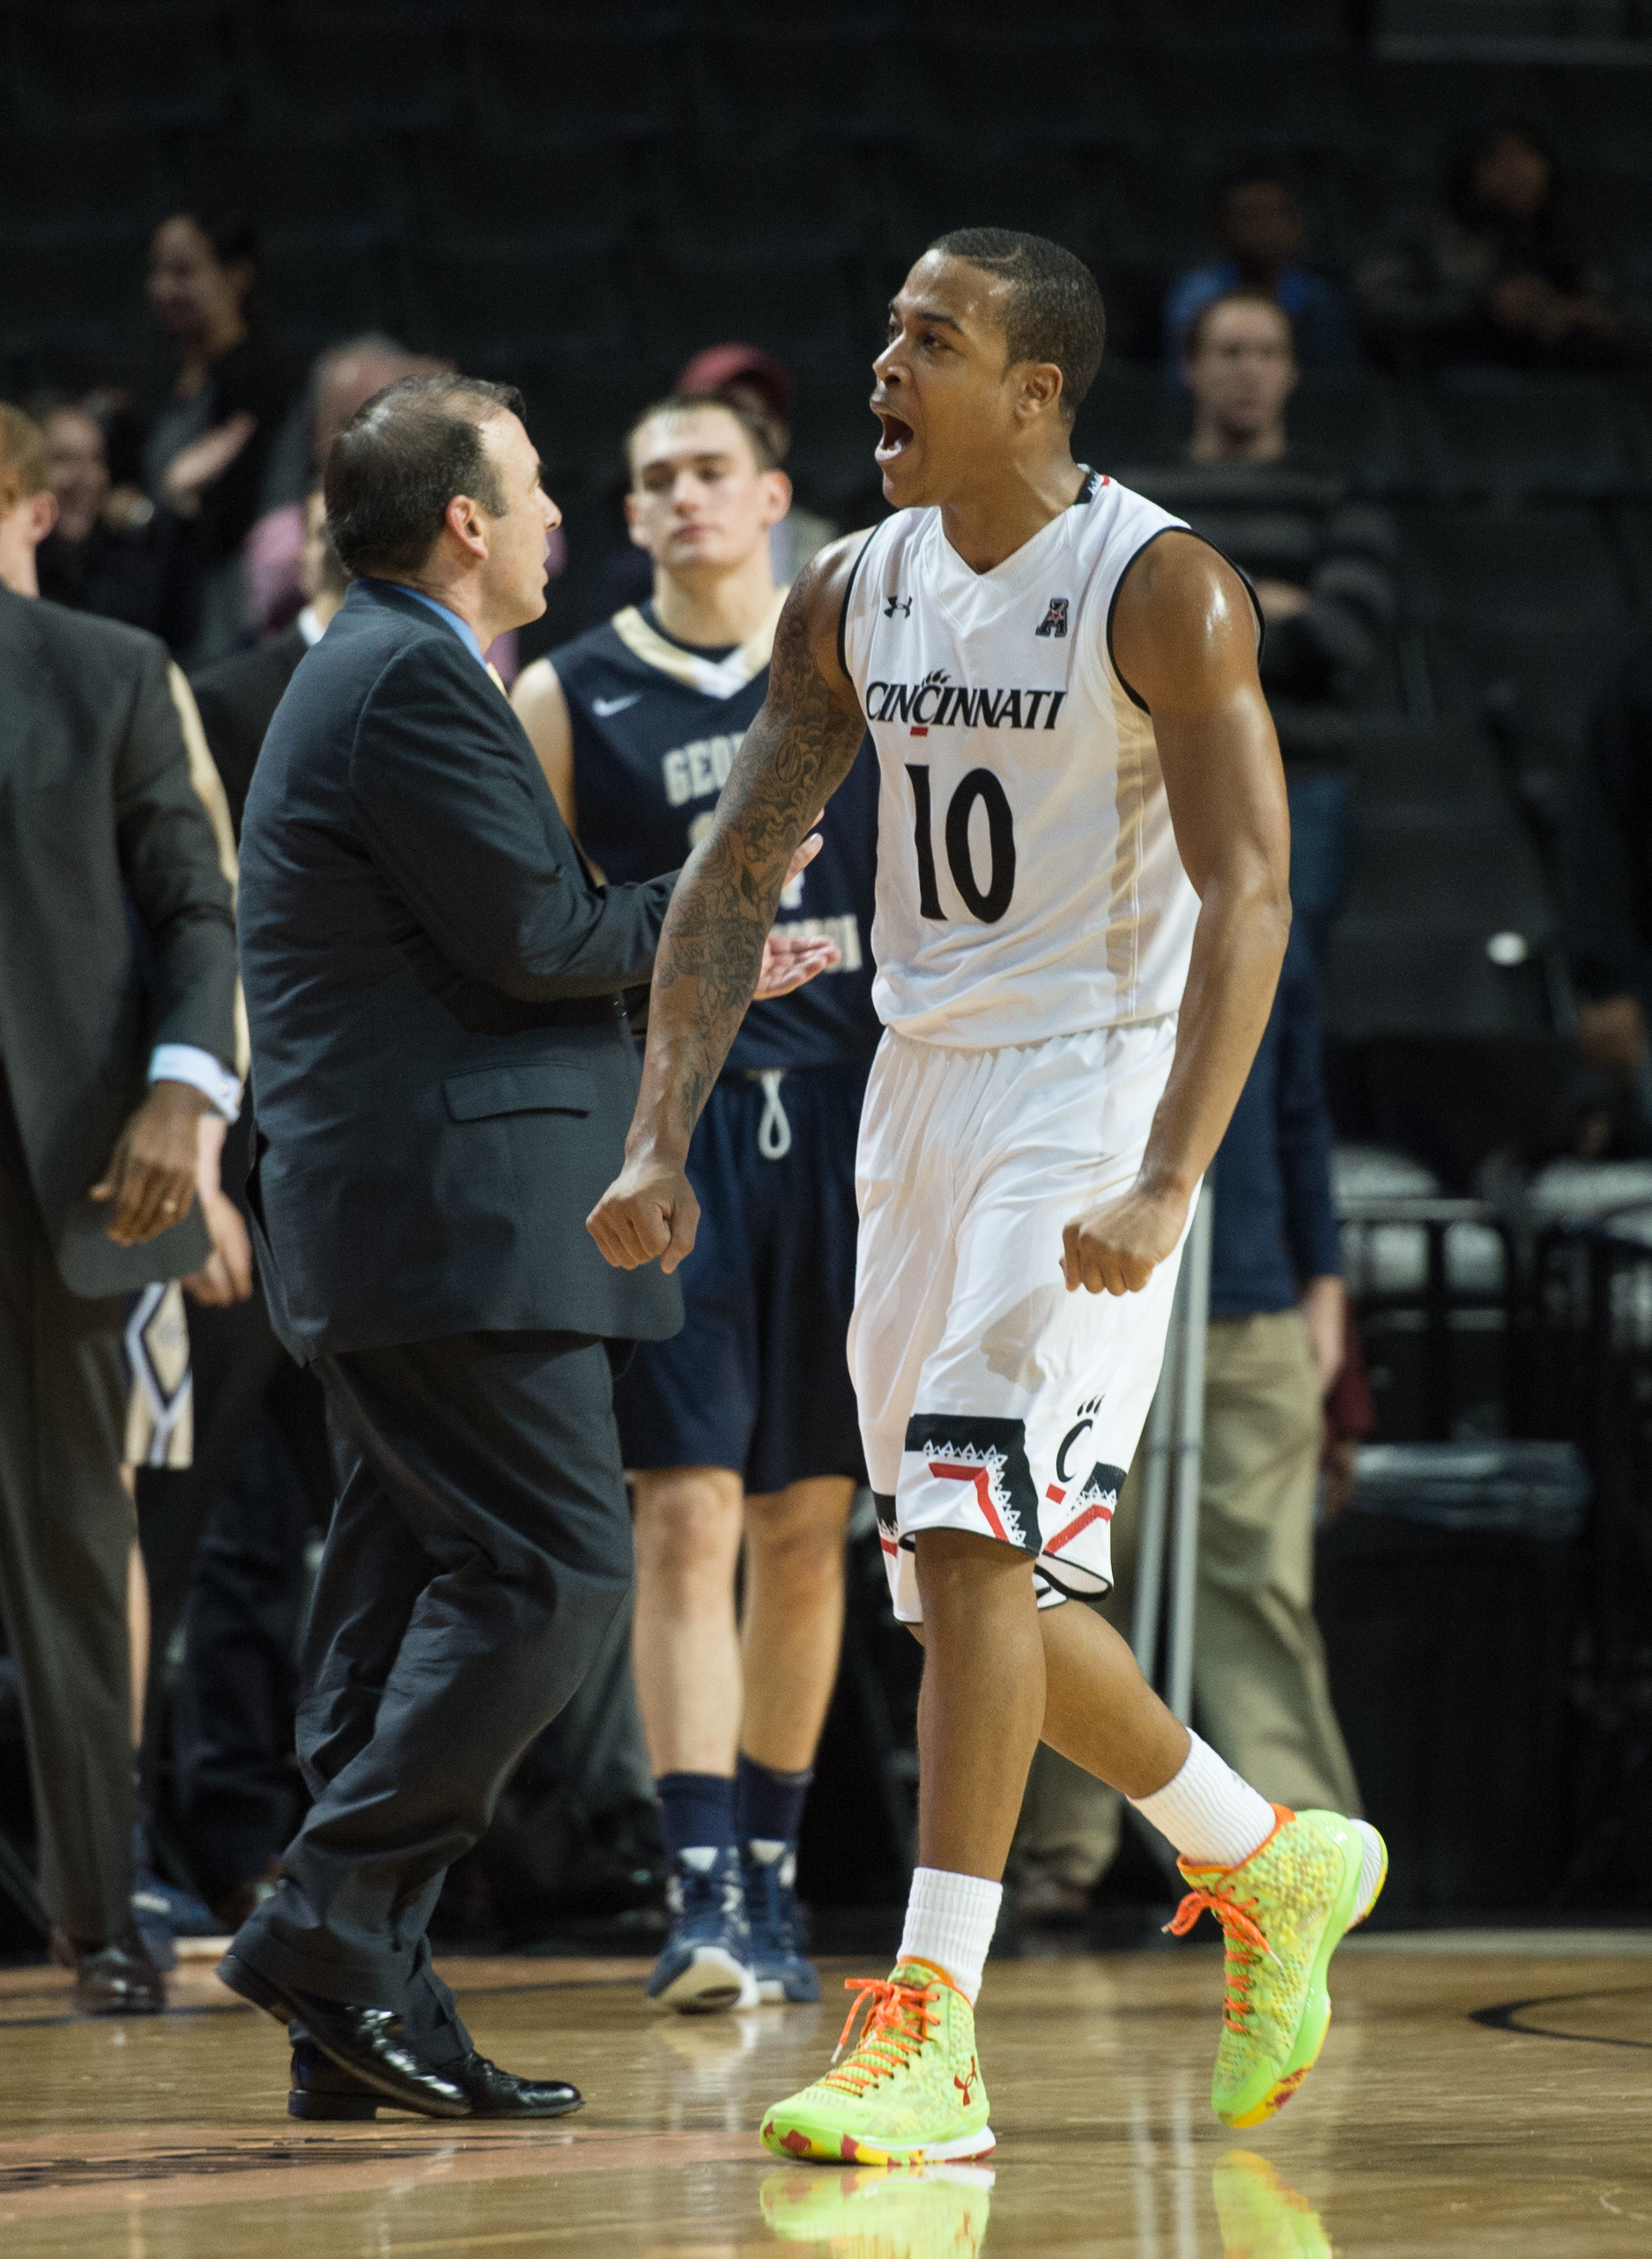 Cincinnati guard Troy Caupain (10) celebrates after their 61-56 win over George Washington in an NCAA college basketball game in the championship game at the Barclays Center Classic, Saturday, Nov. 28, 2015, in New York. Cincinnati won 61-56. (AP Photo/Br